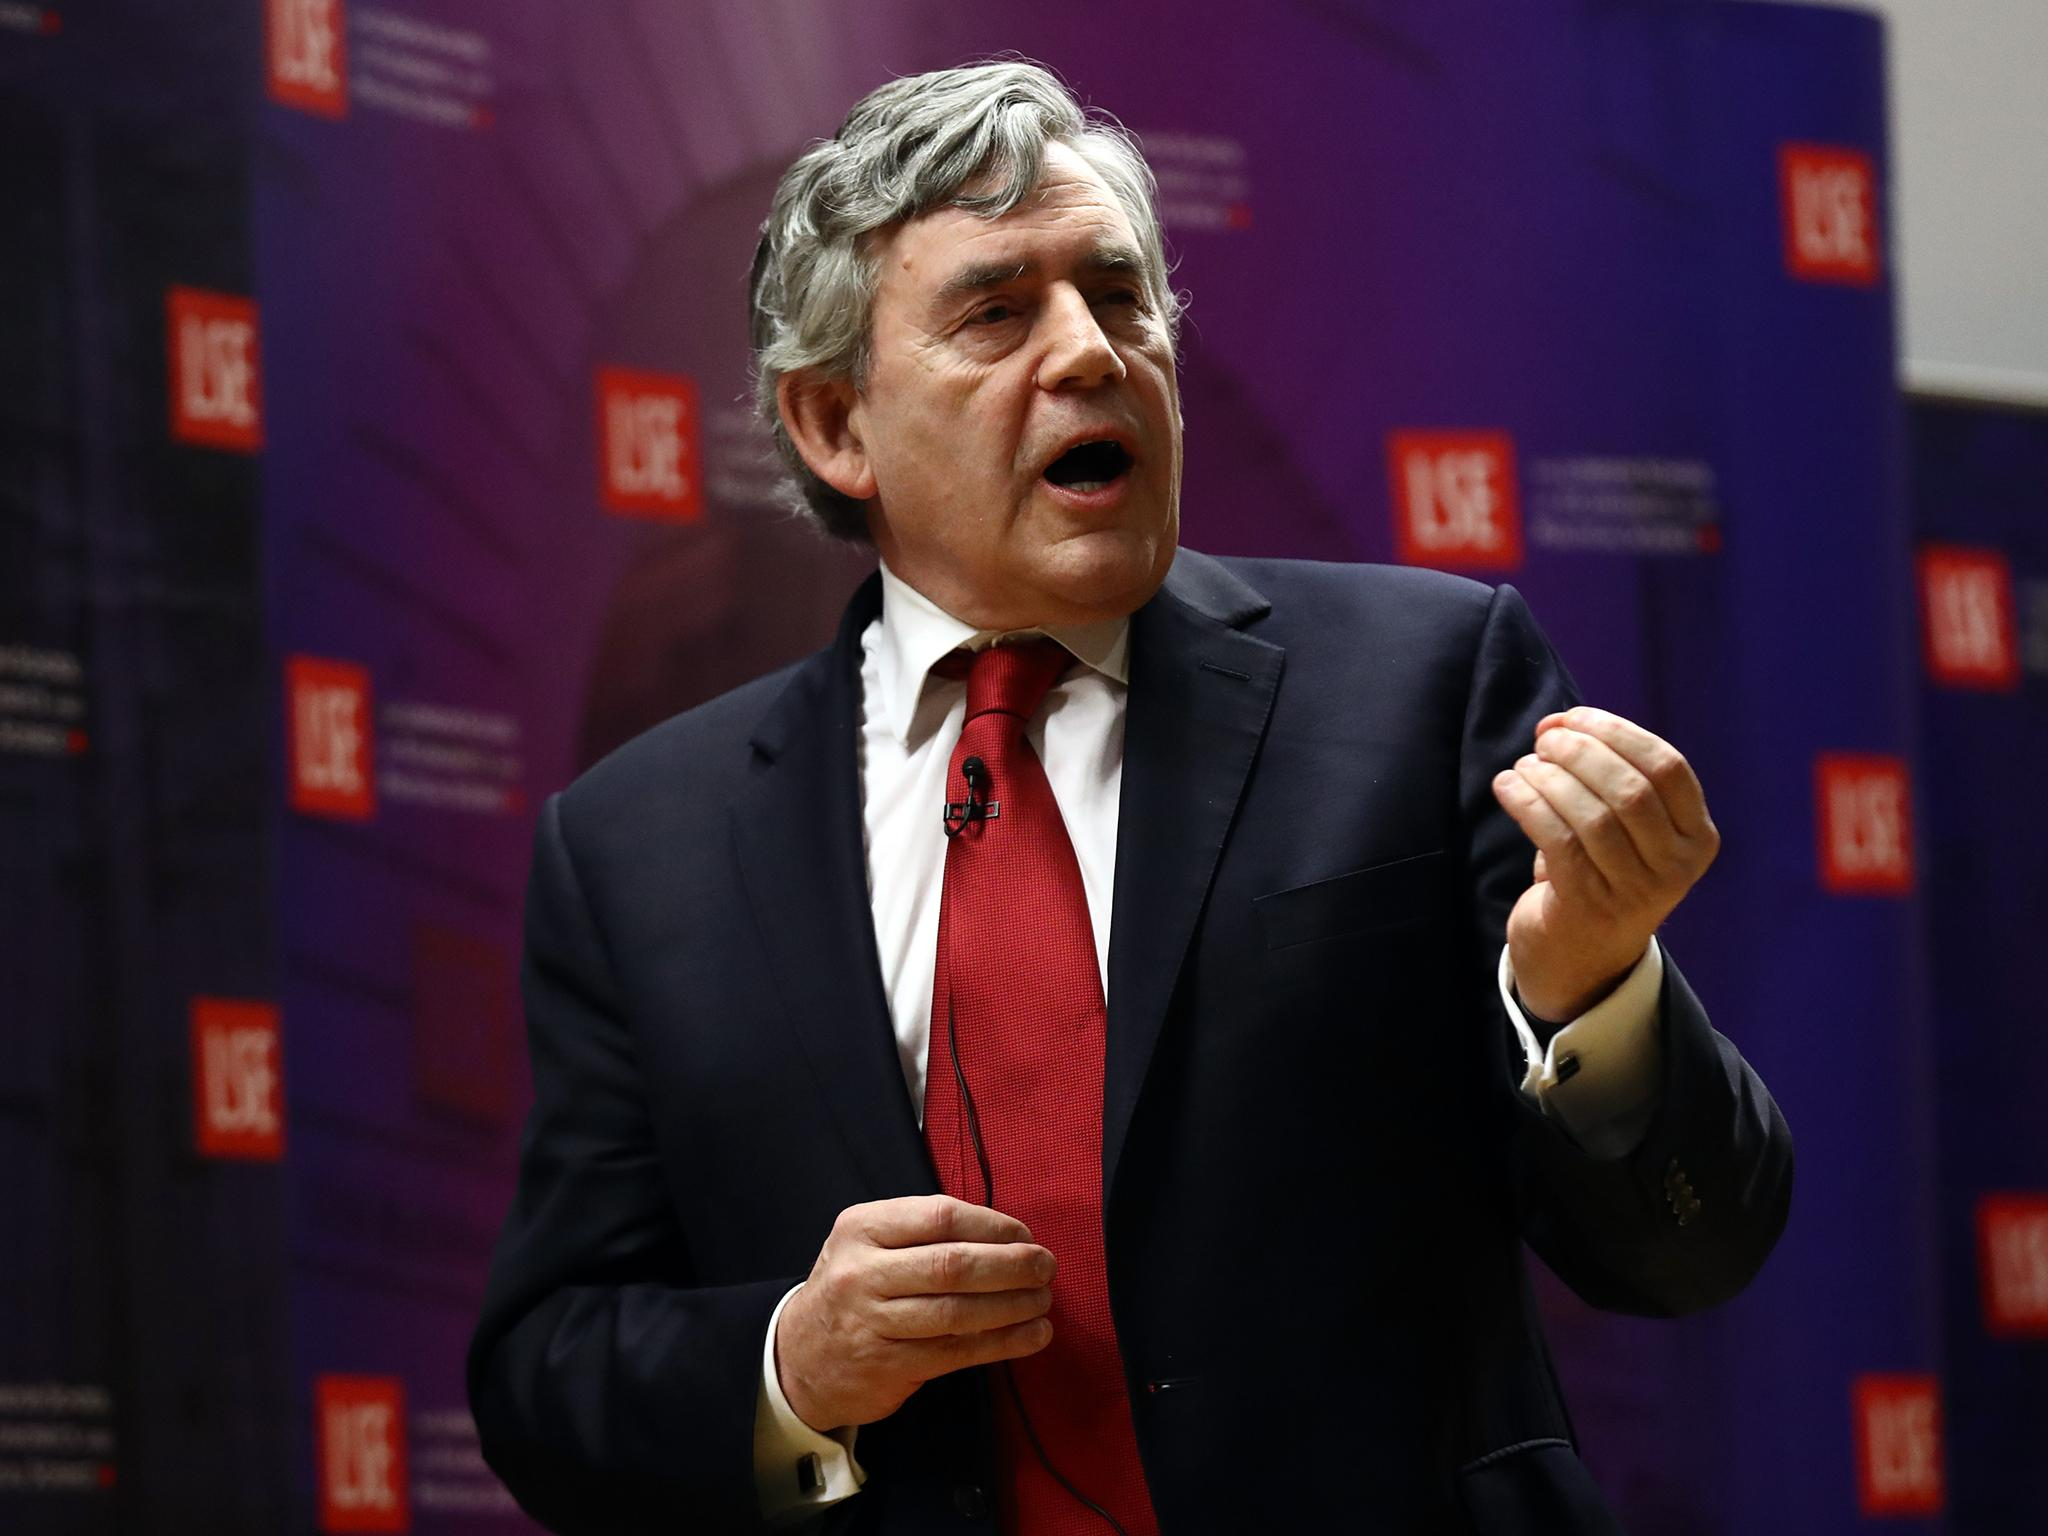 financial crisis, recession, Gordon Brown, trade war, economic cooperation, ww3, London, China